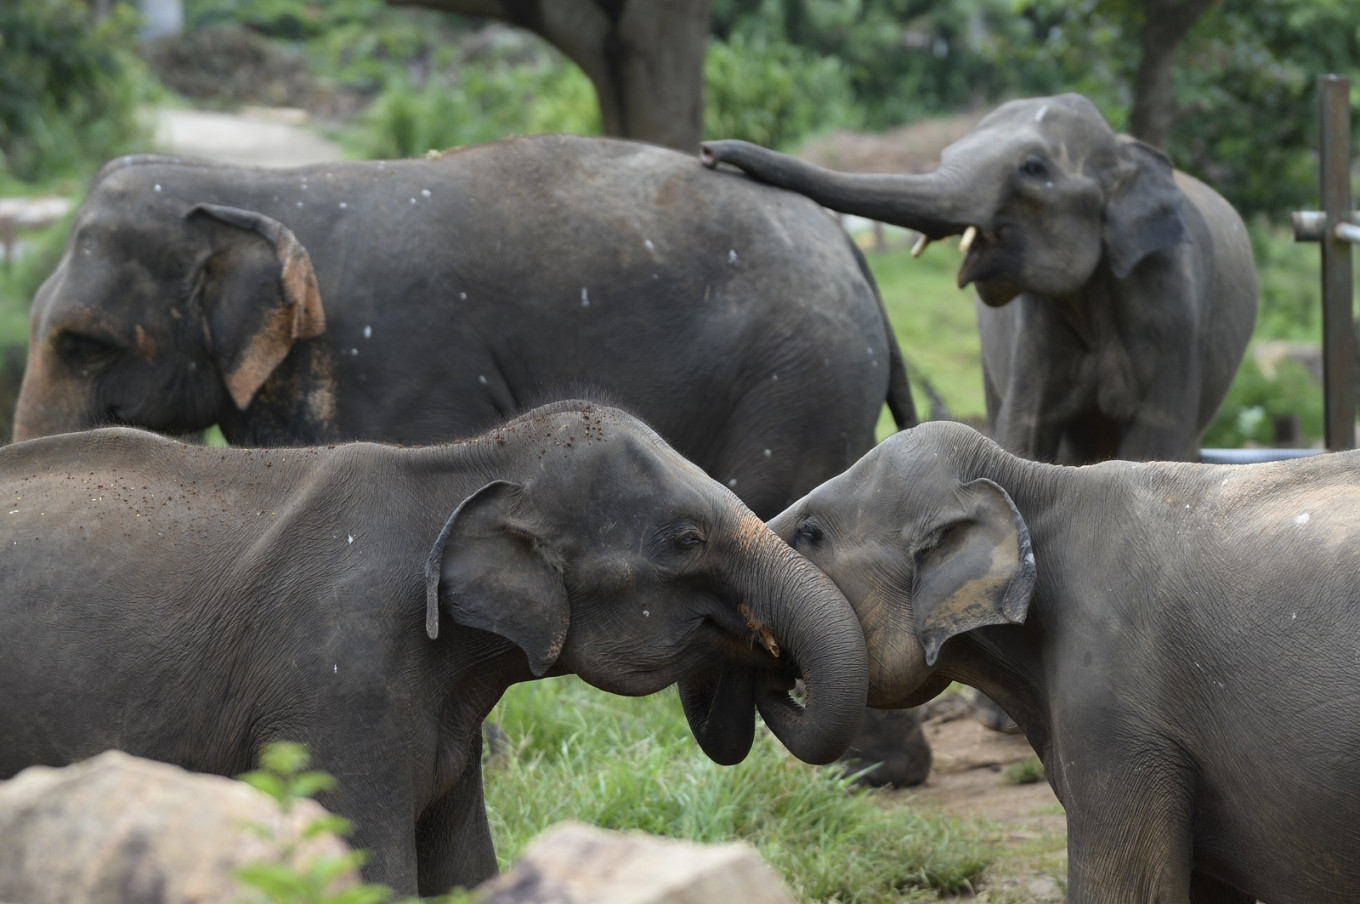 Sri Lanka to ban imports of plastic goods to protect elephants